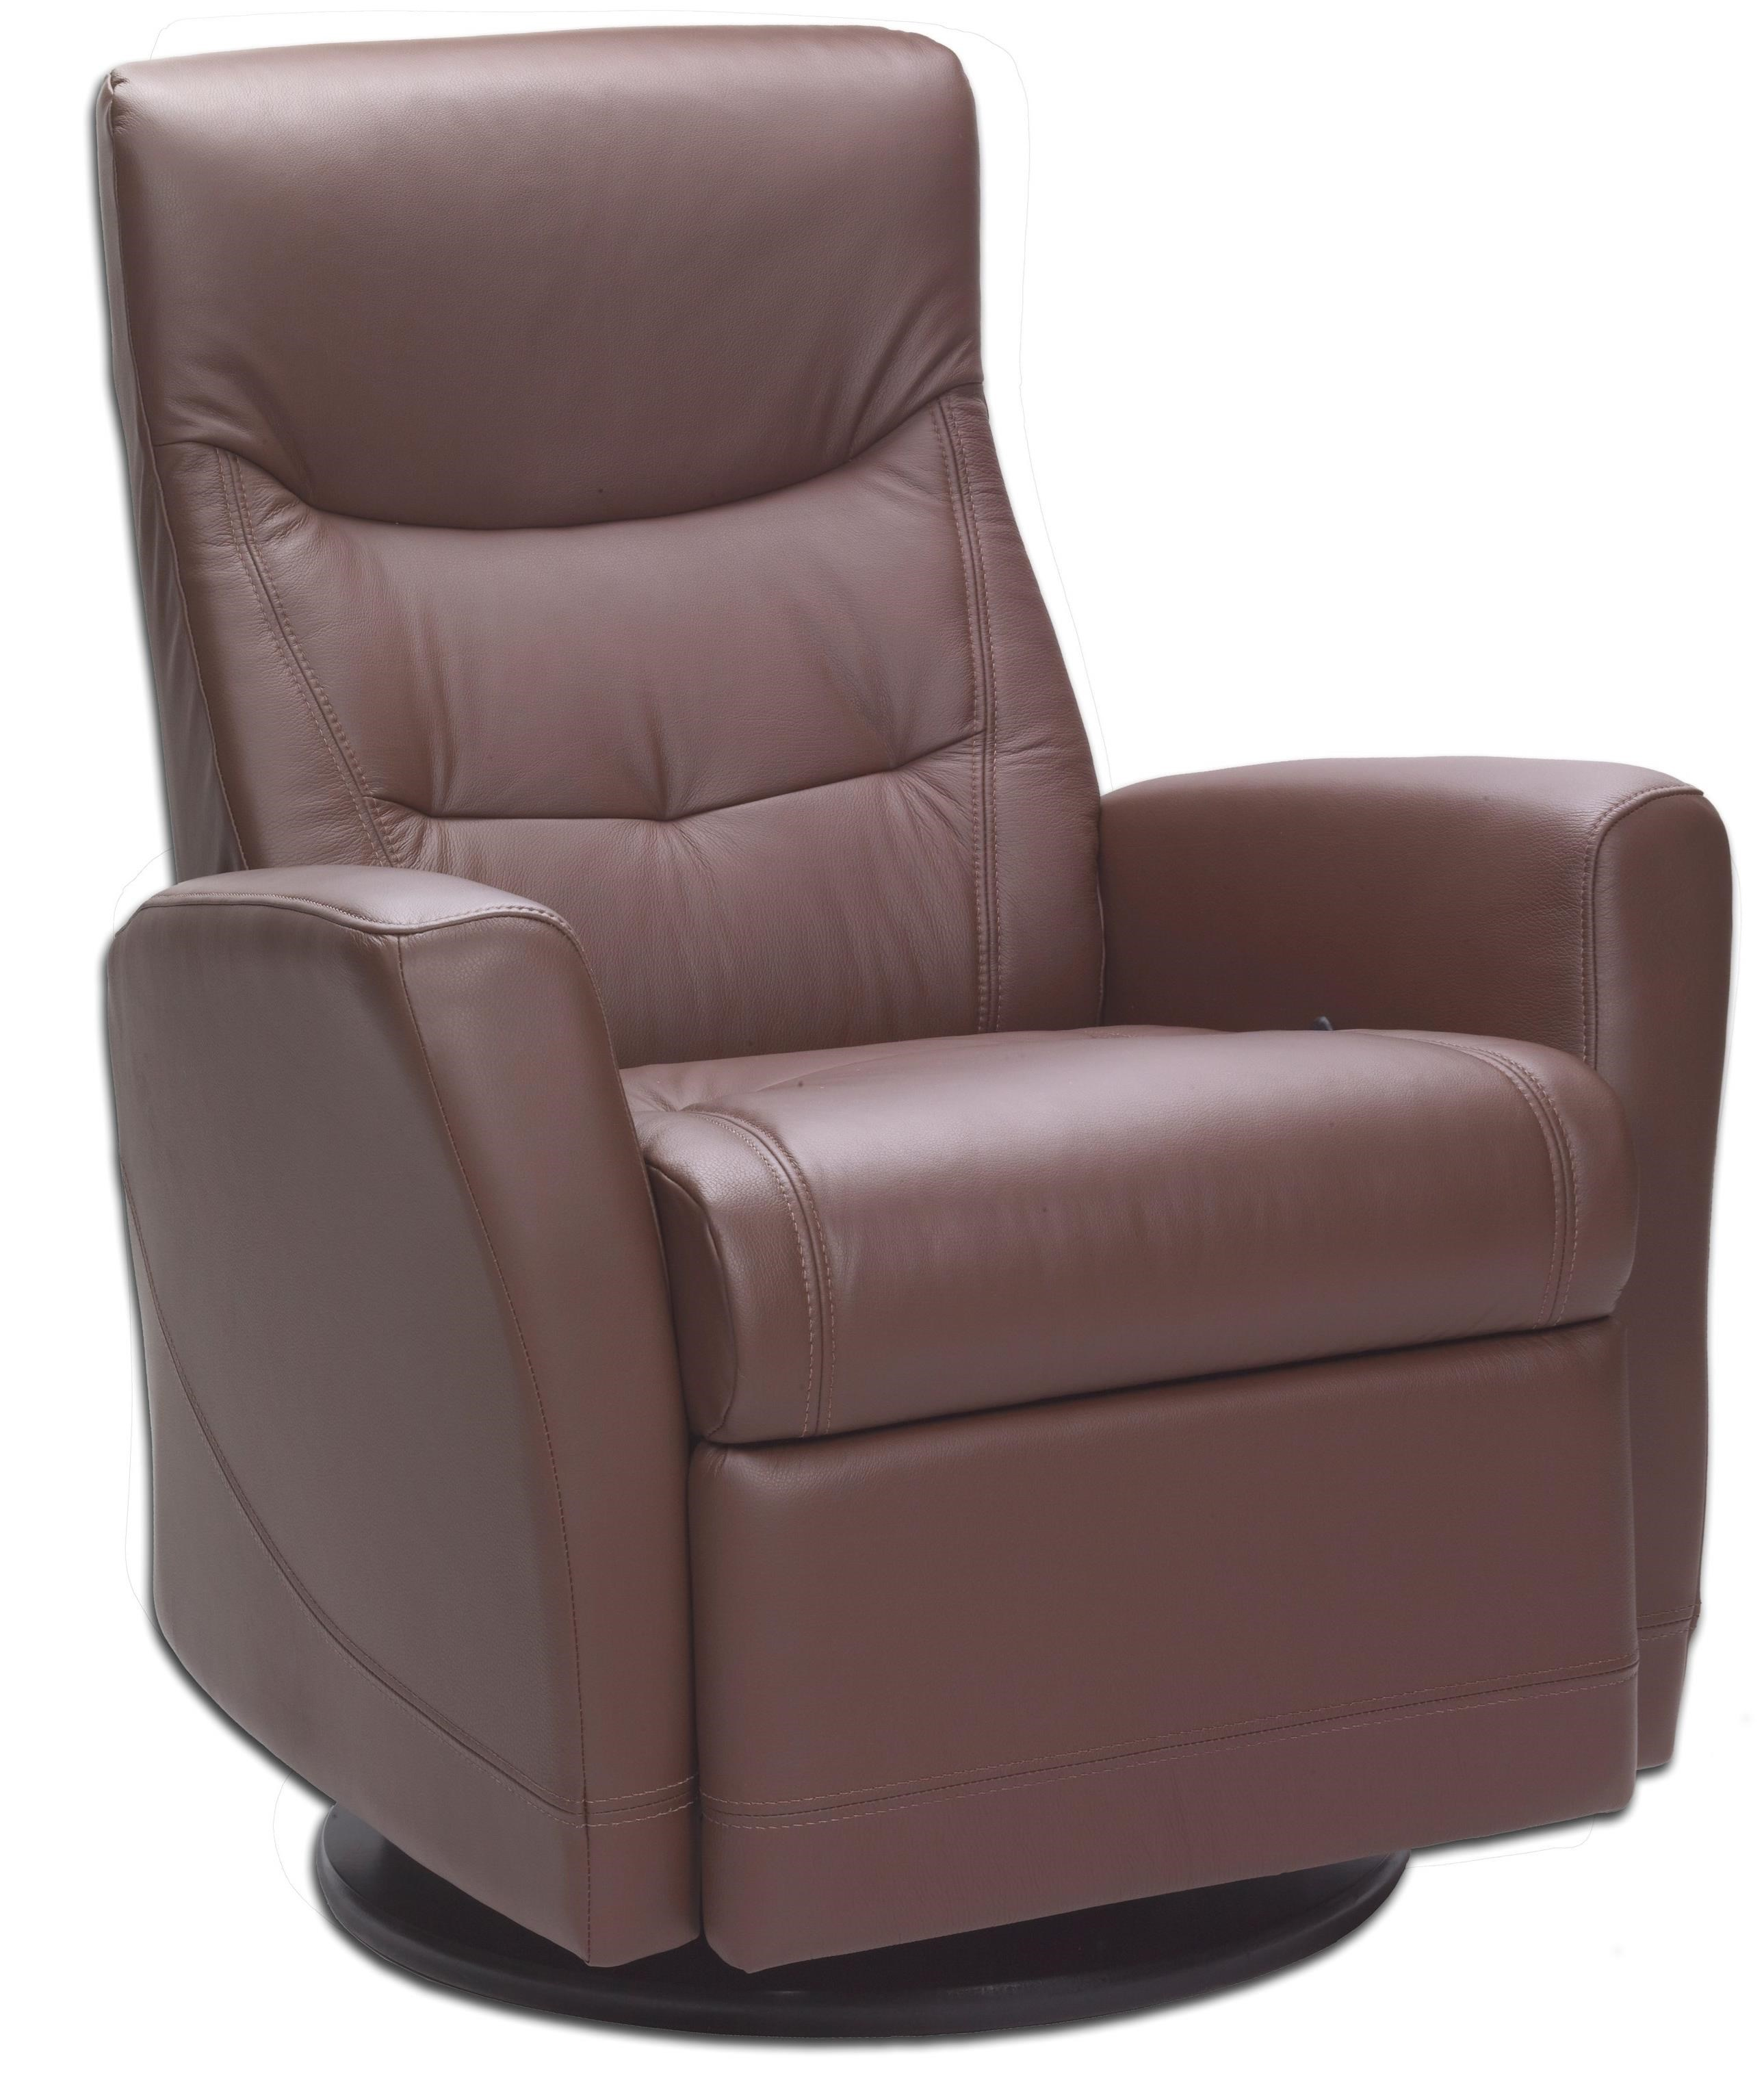 Oslo  Large Relaxer Recliner by Fjords by Hjellegjerde at Upper Room Home Furnishings